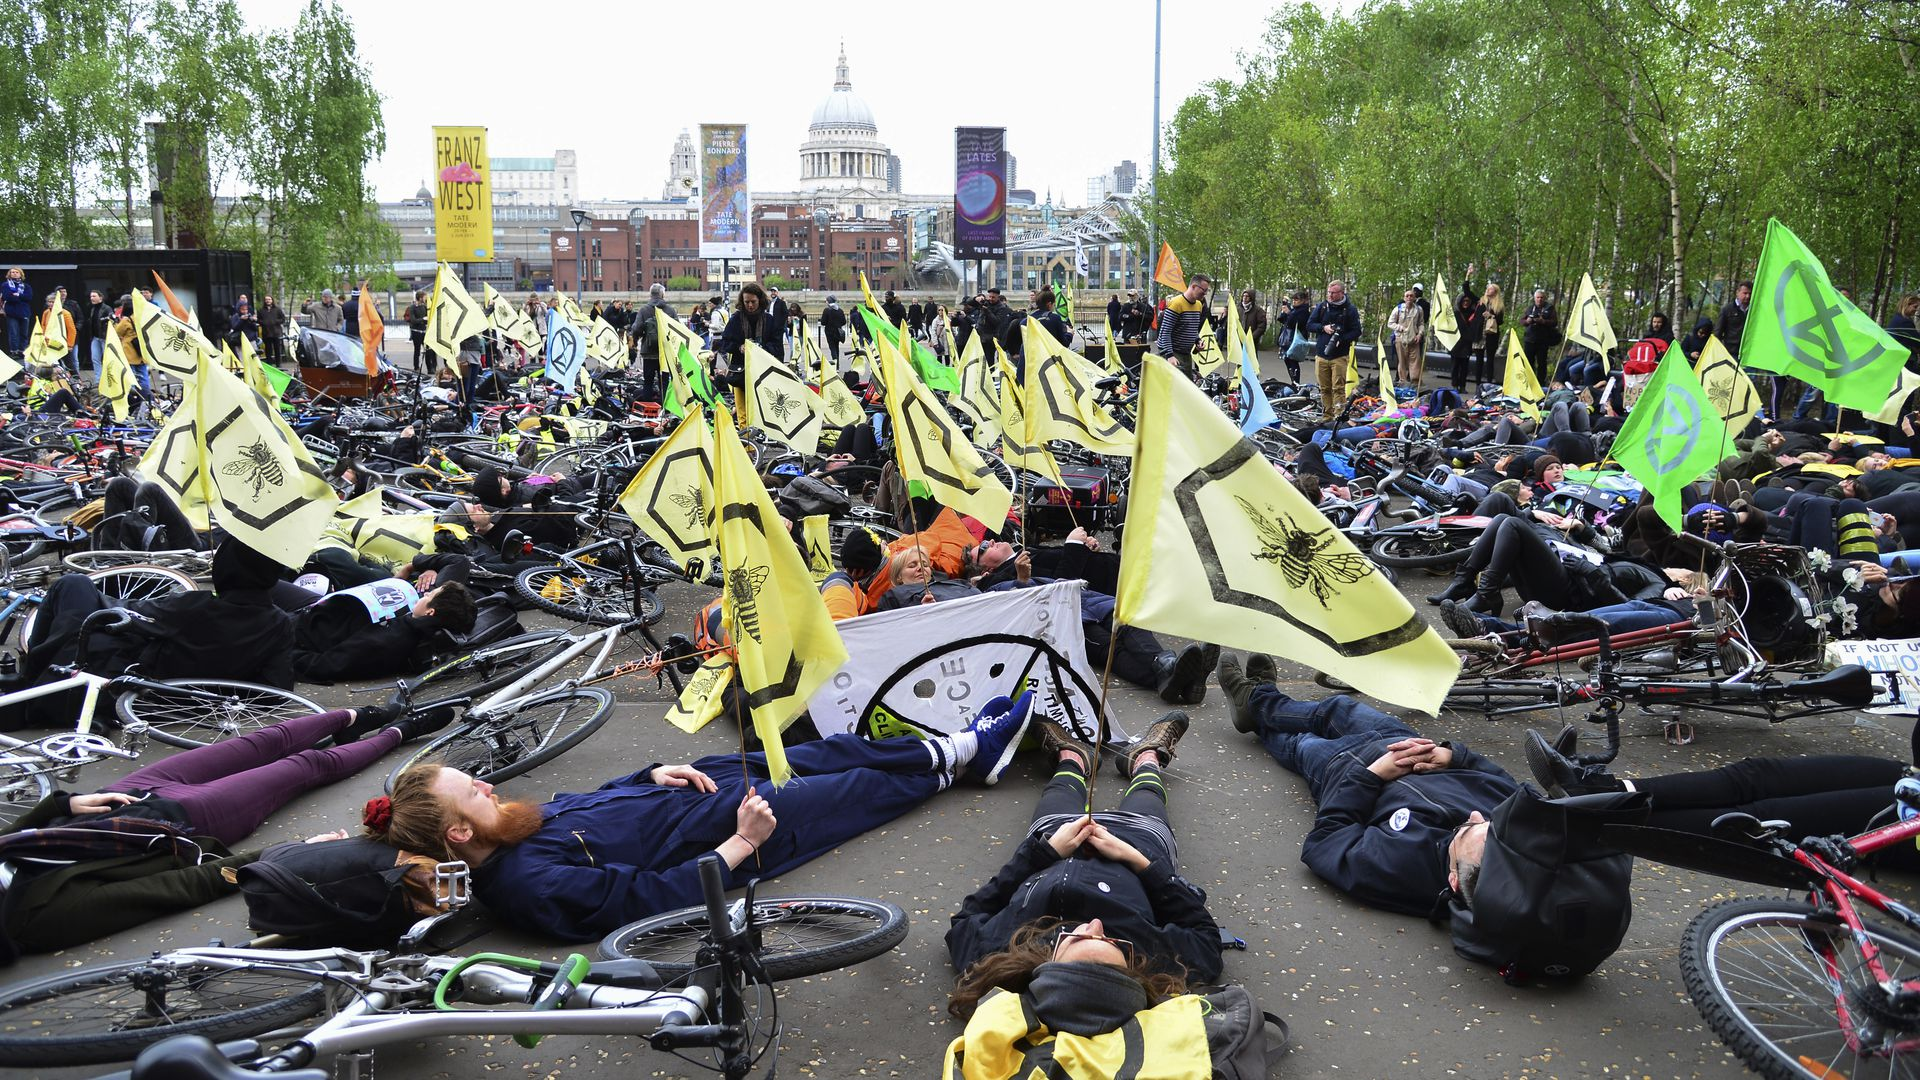 Extinction Rebellion protests April 27 in front of UK Parliament building. Photo: Claire Doherty/In Pictures via Getty Images